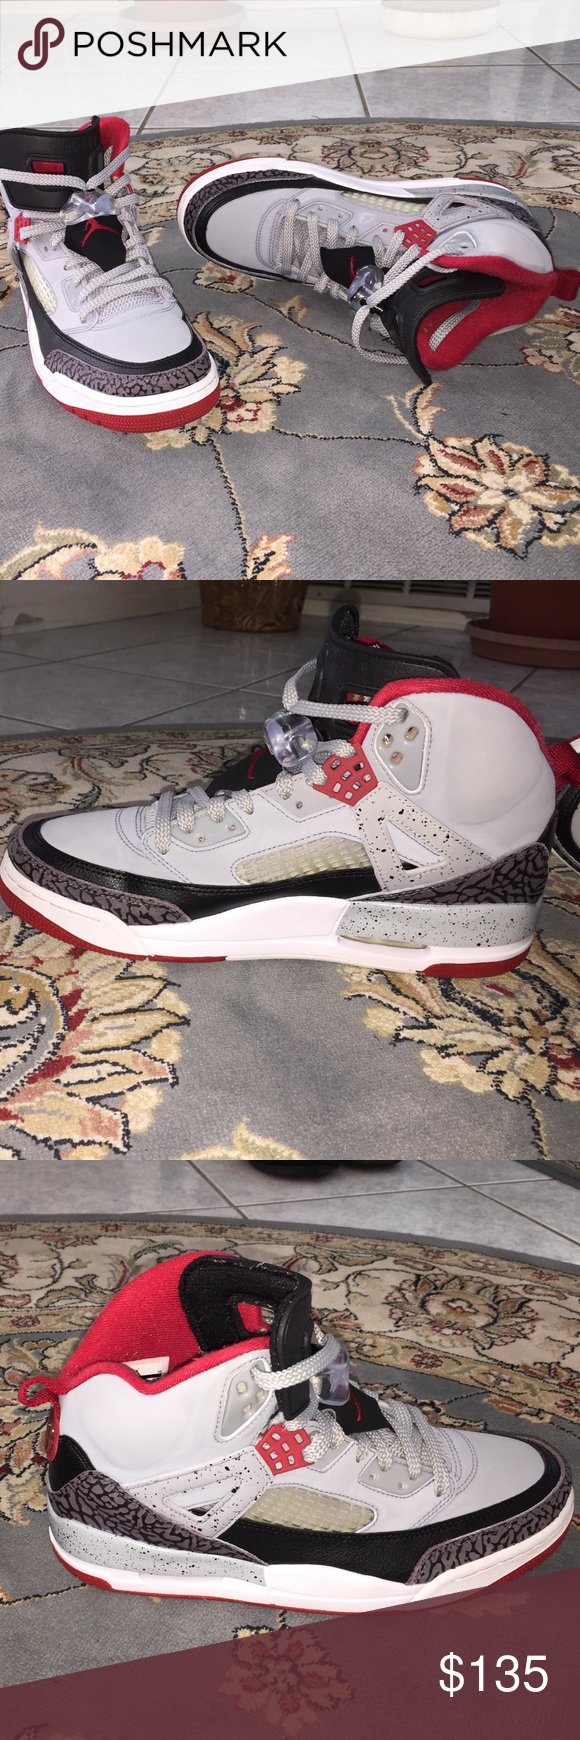 new style 6a63d d9ca4 Nike Air Jordan Iv 4 Mars Spike Lee Brooklyn Very good condition,No  scratch, nice look men Jordan shoes. Best price, nice gift for Christmas!